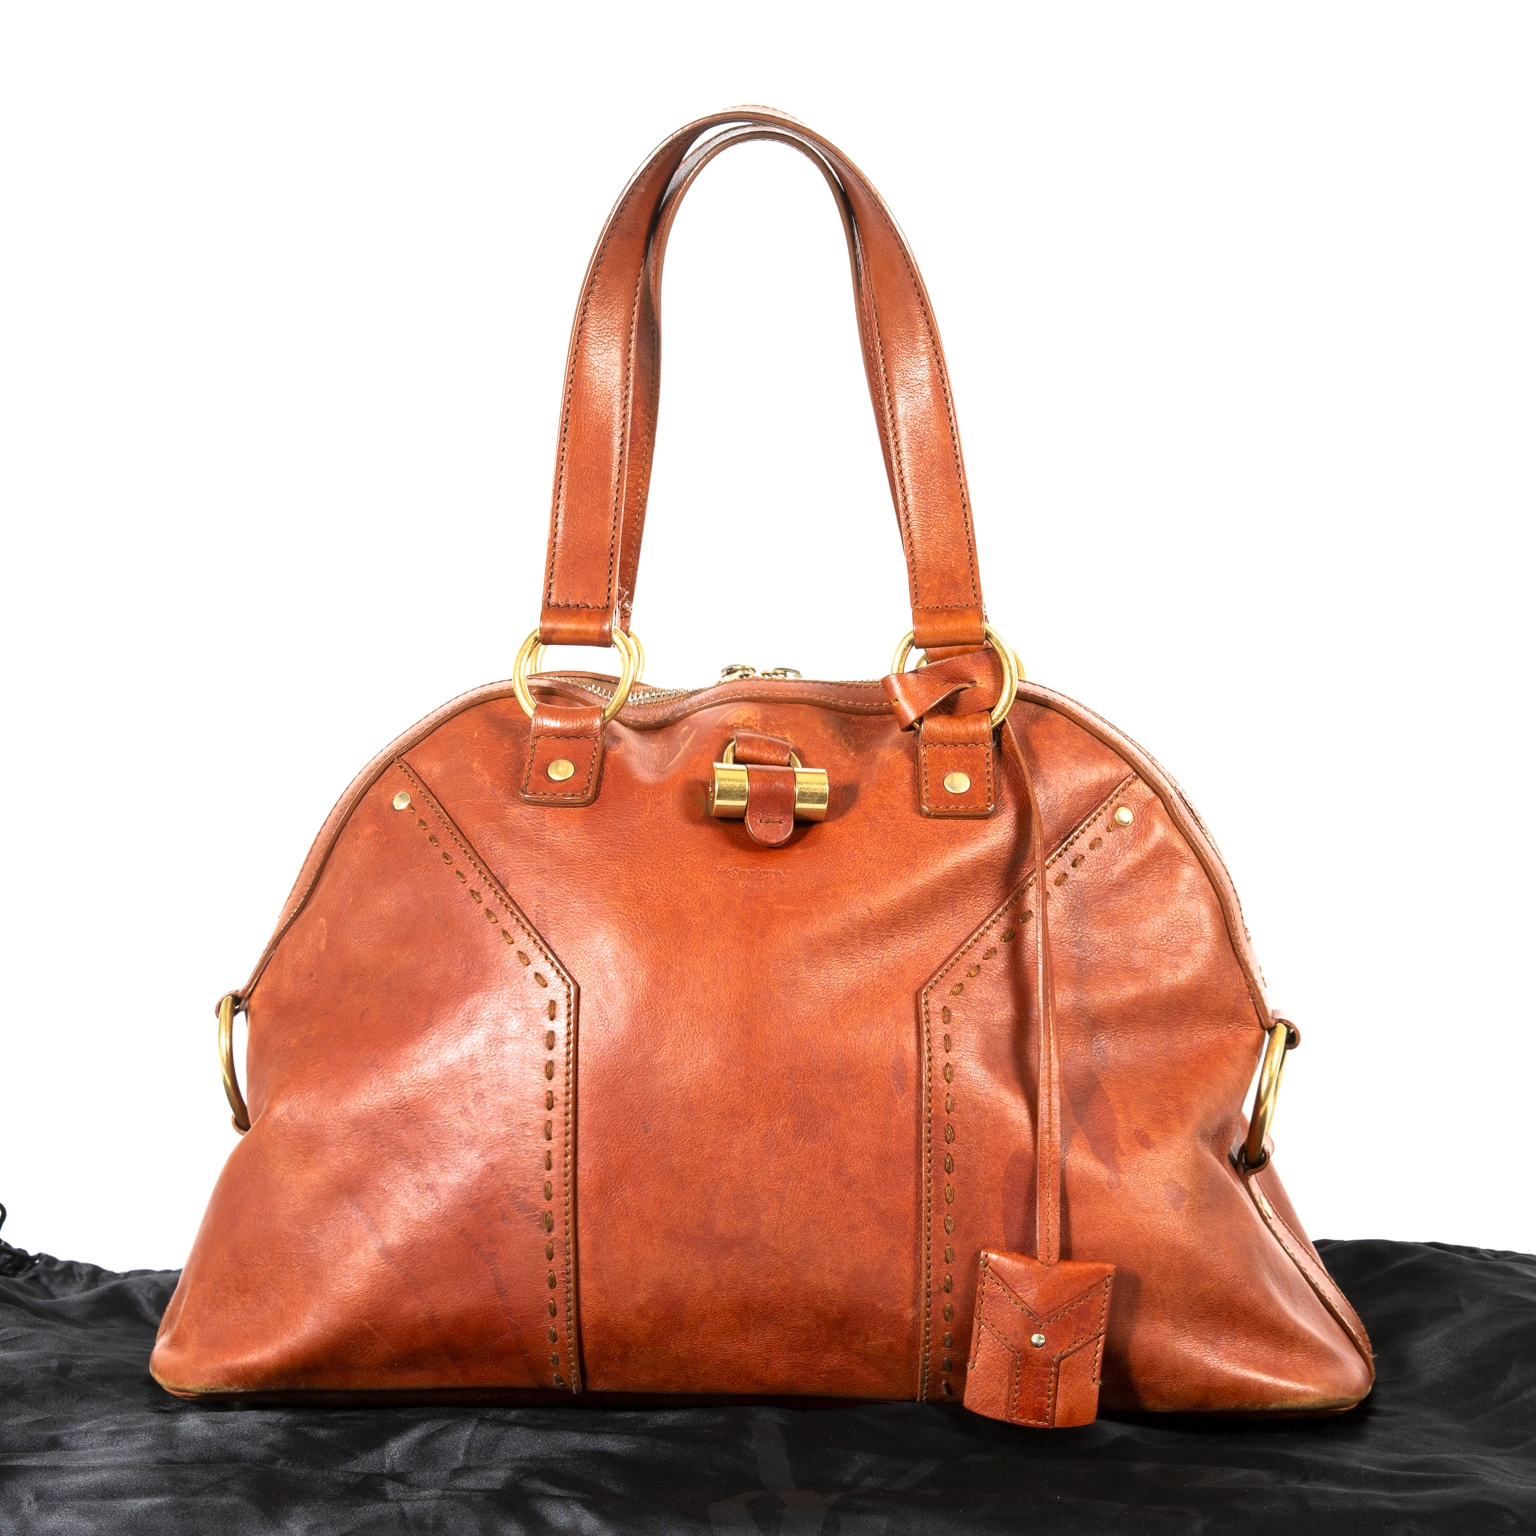 b67f80c7012b ... Yves Saint Laurent Muse One Bourbon Leather Bag now for sale at  labellov vintage fashion webshop